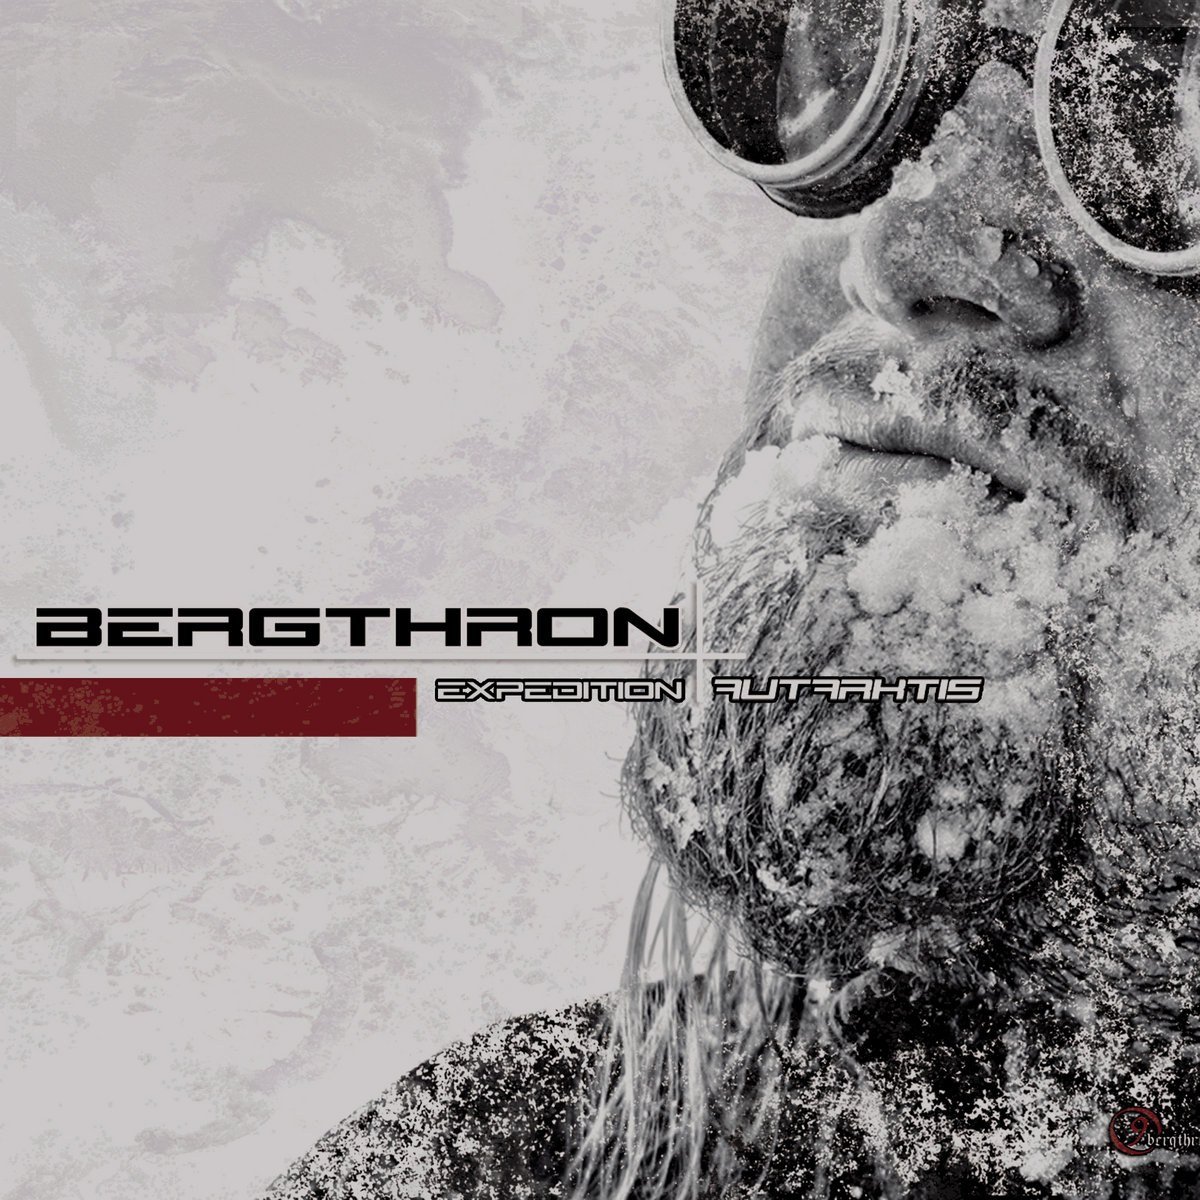 Review for Bergthron - Expedition Autarktis